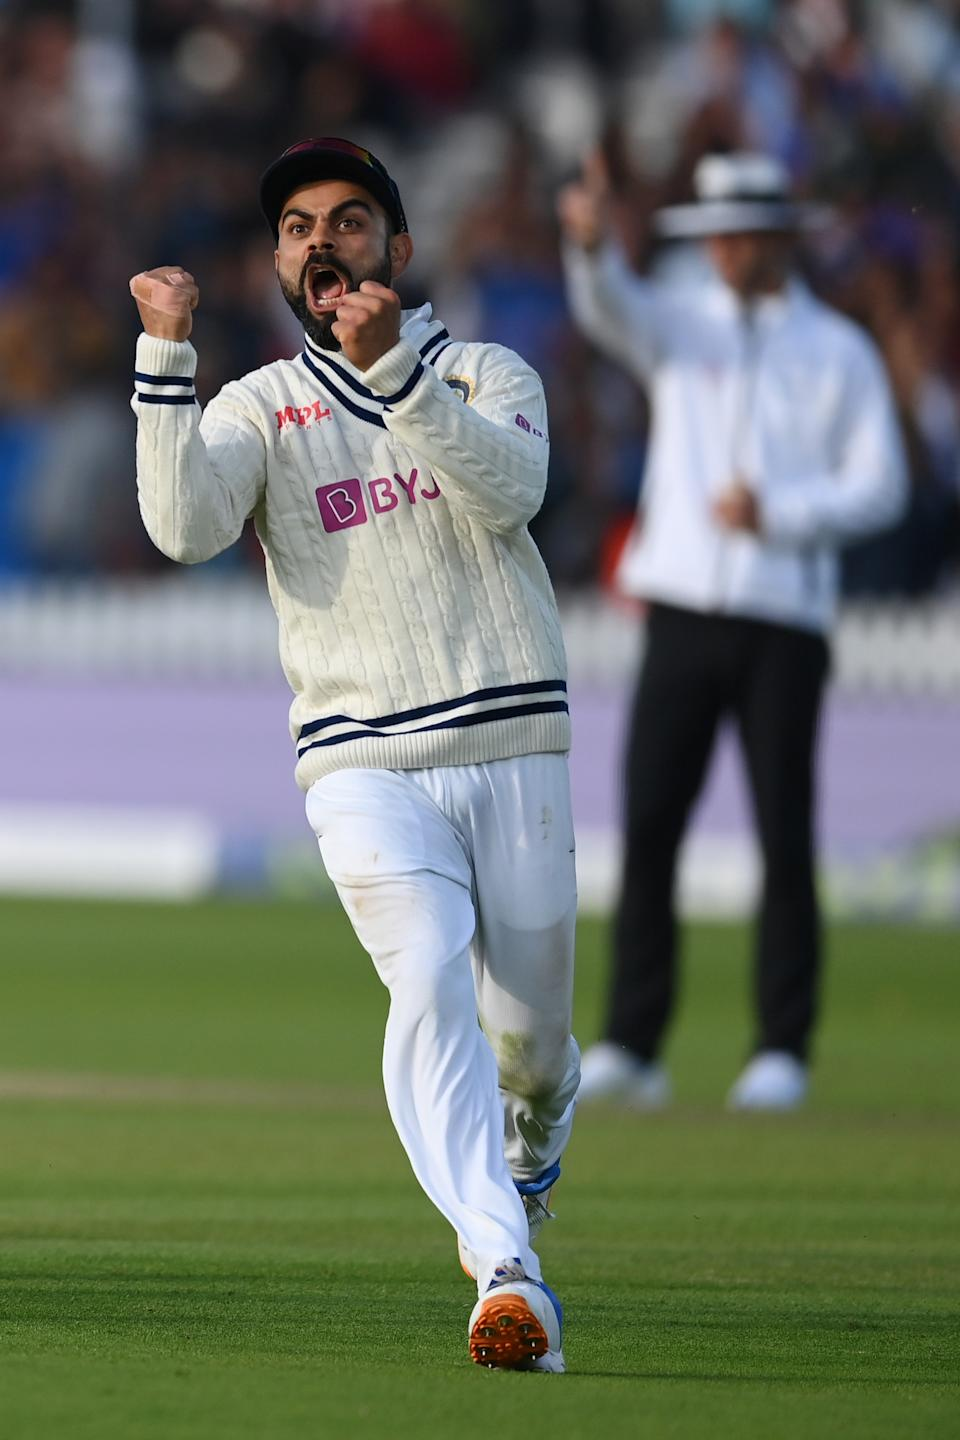 <p>LONDON, ENGLAND - AUGUST 16: Virat Kohli of India celebrates the crucial wicket of Jos Buttler of England during the Second LV= Insurance Test Match: Day Five between England and India at Lord's Cricket Ground on August 16, 2021 in London, England. (Photo by Mike Hewitt/Getty Images)</p>